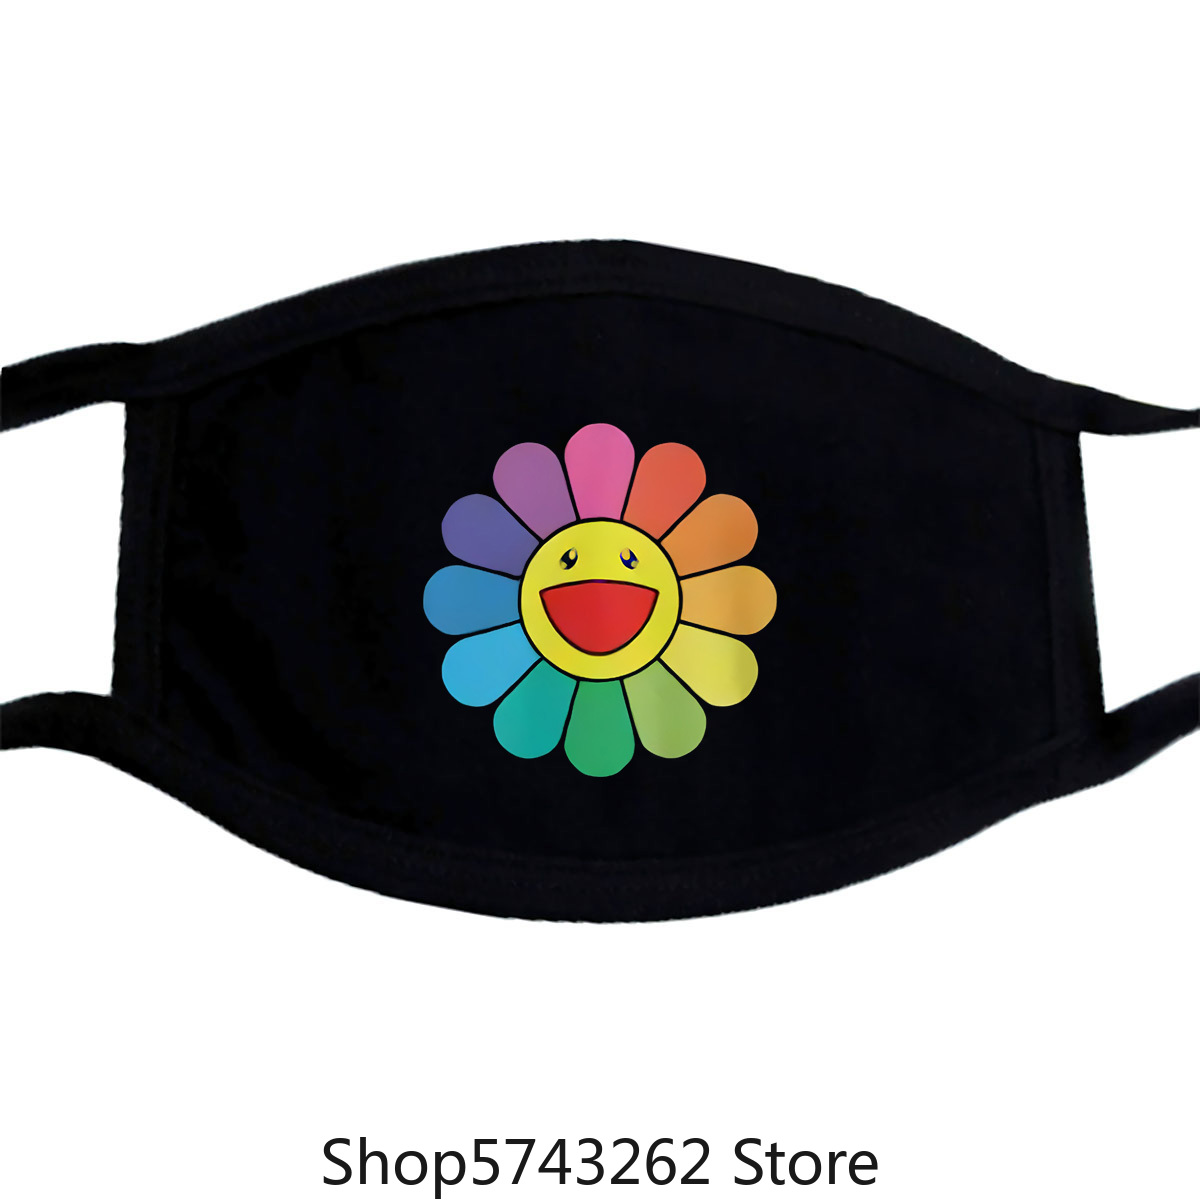 Takashi Murakami Happy Flower Mask Unisex Murakami Mask For Men And Women Washable Reusable Mask With